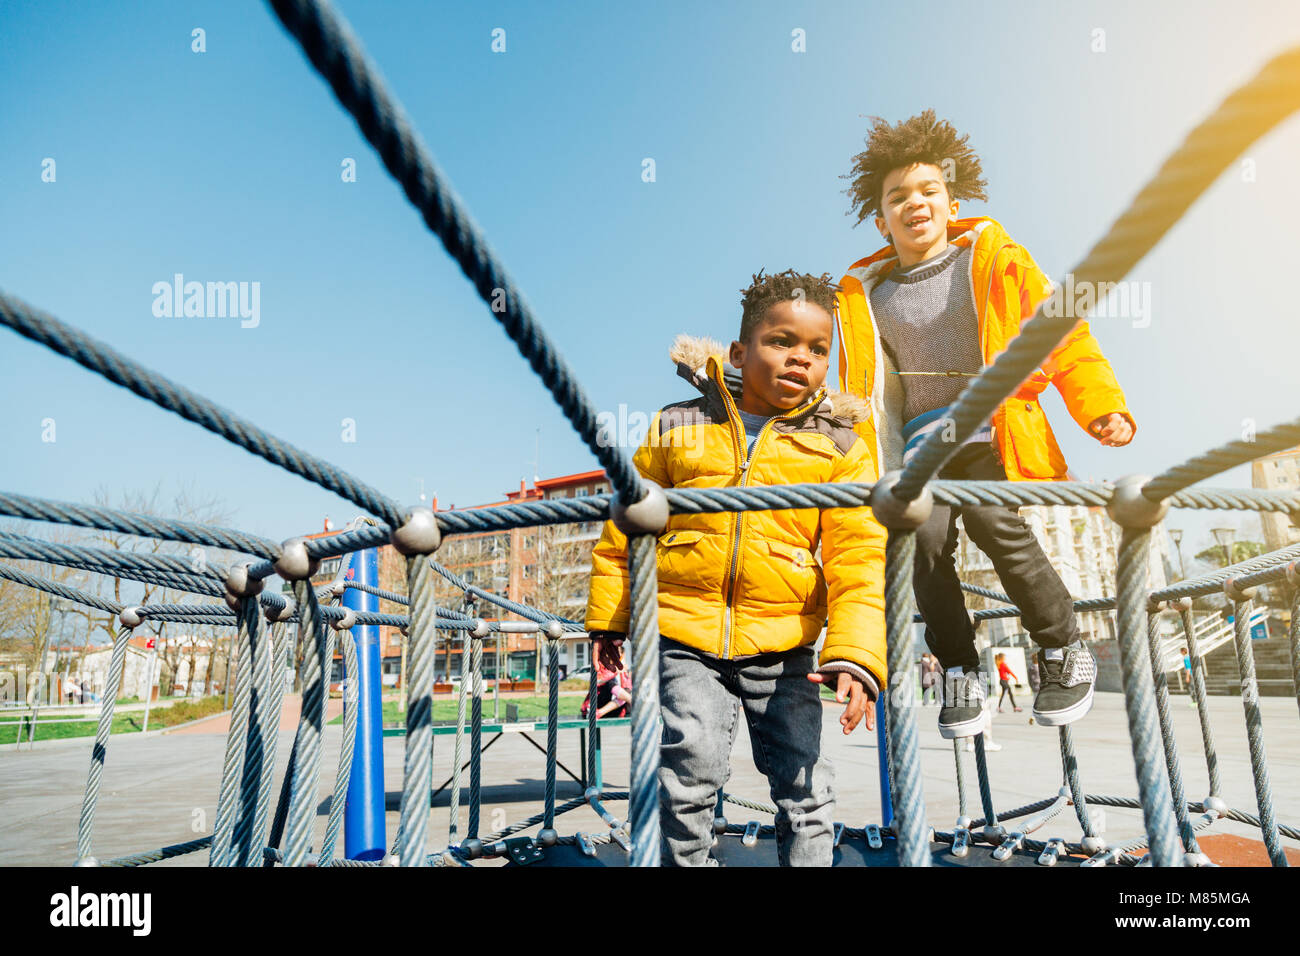 Two children with yellow coats jumping on elastic bed in a playground in a sunny day - Stock Image